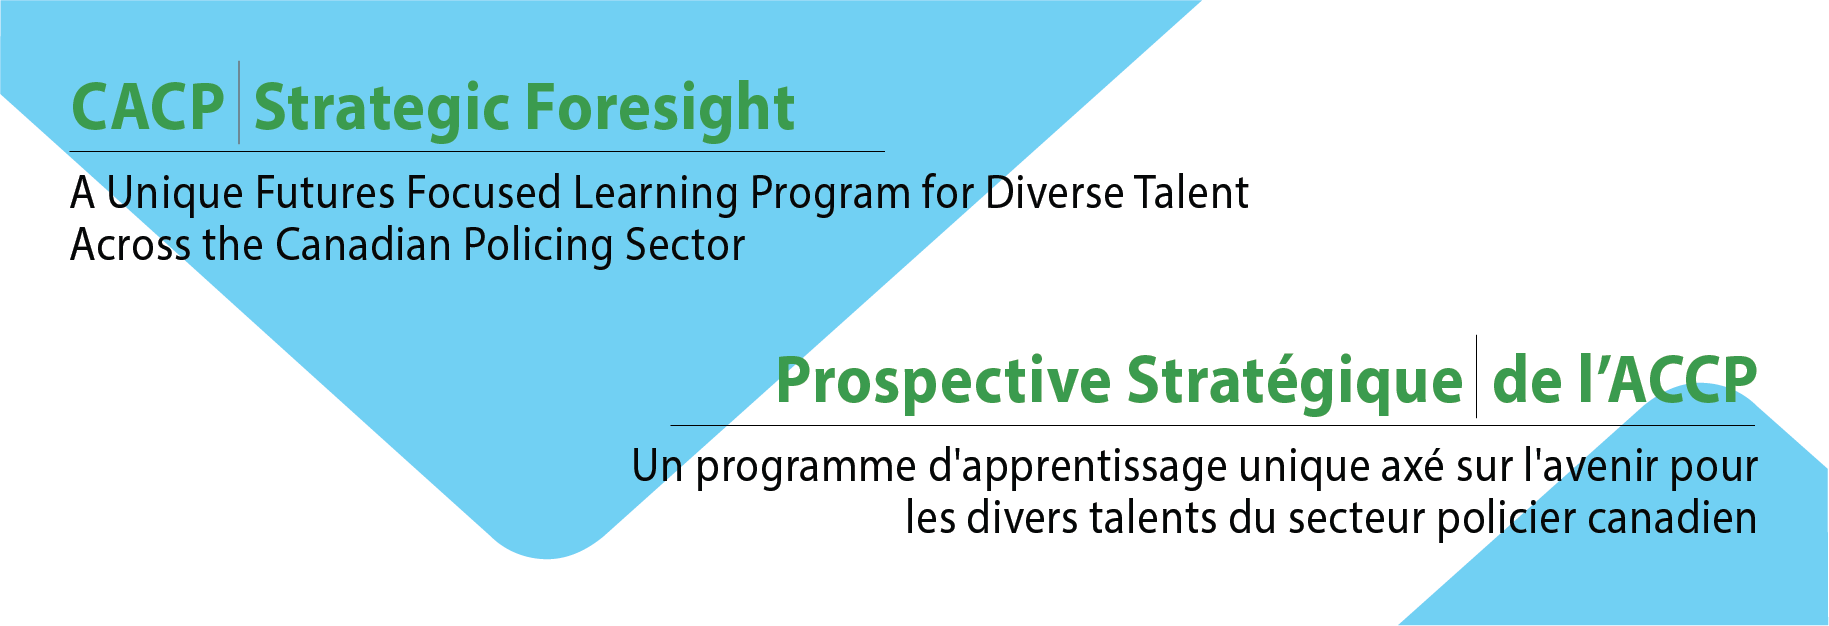 CACP Strategic Foresight Program